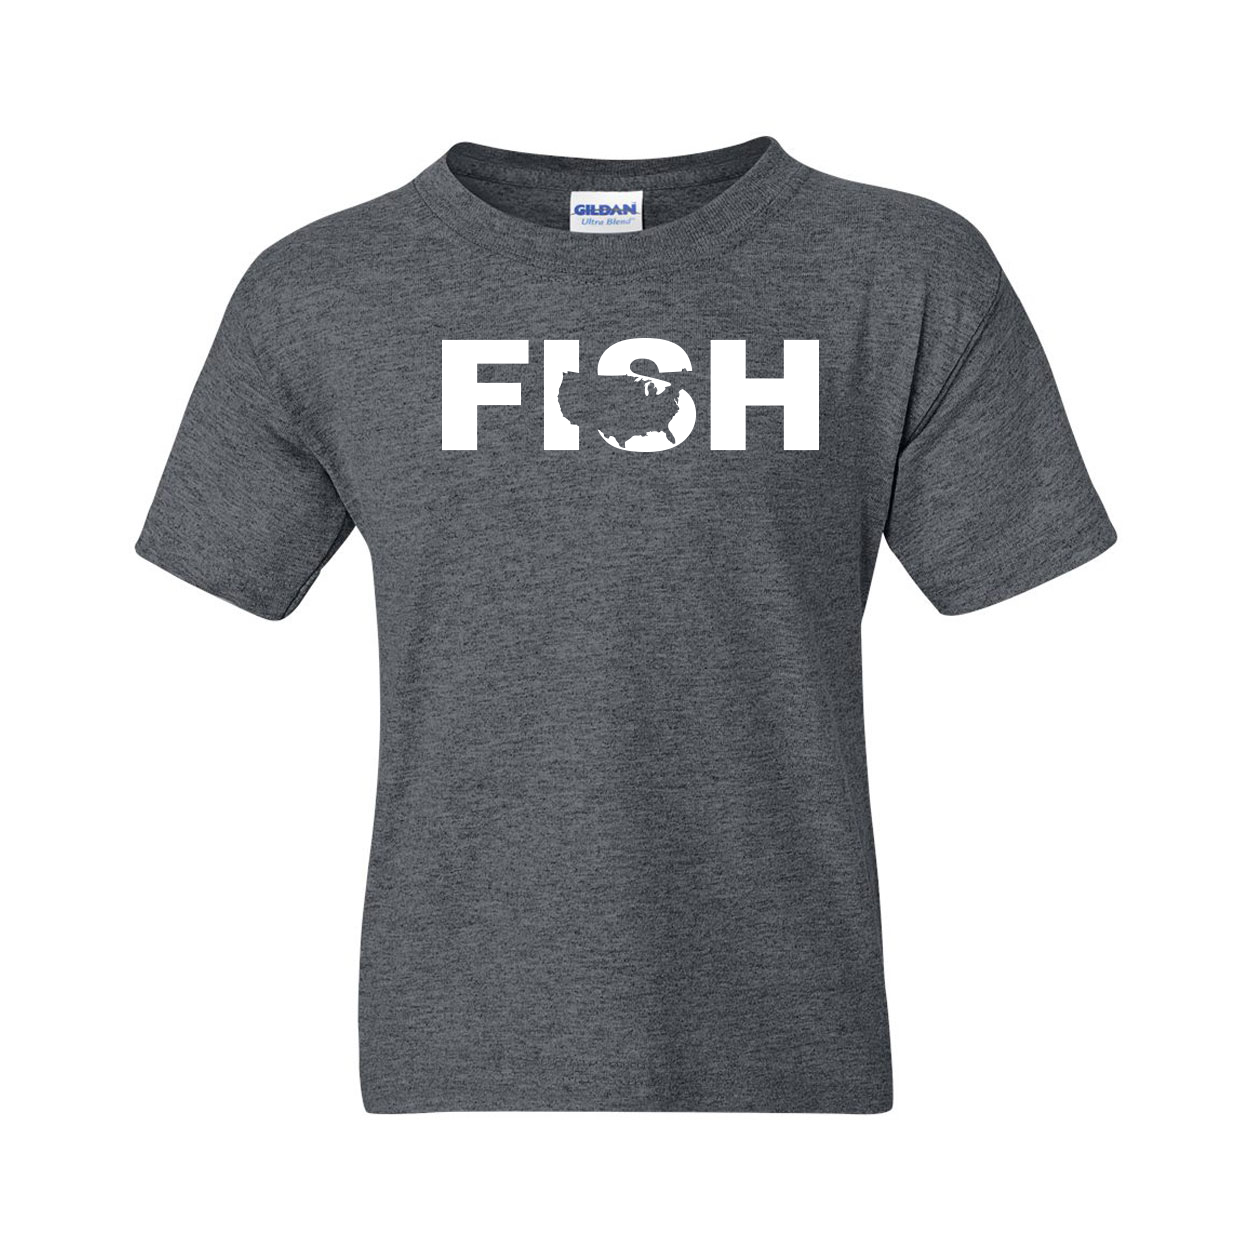 Fish United States Classic Youth T-Shirt Dark Heather Gray (White Logo)